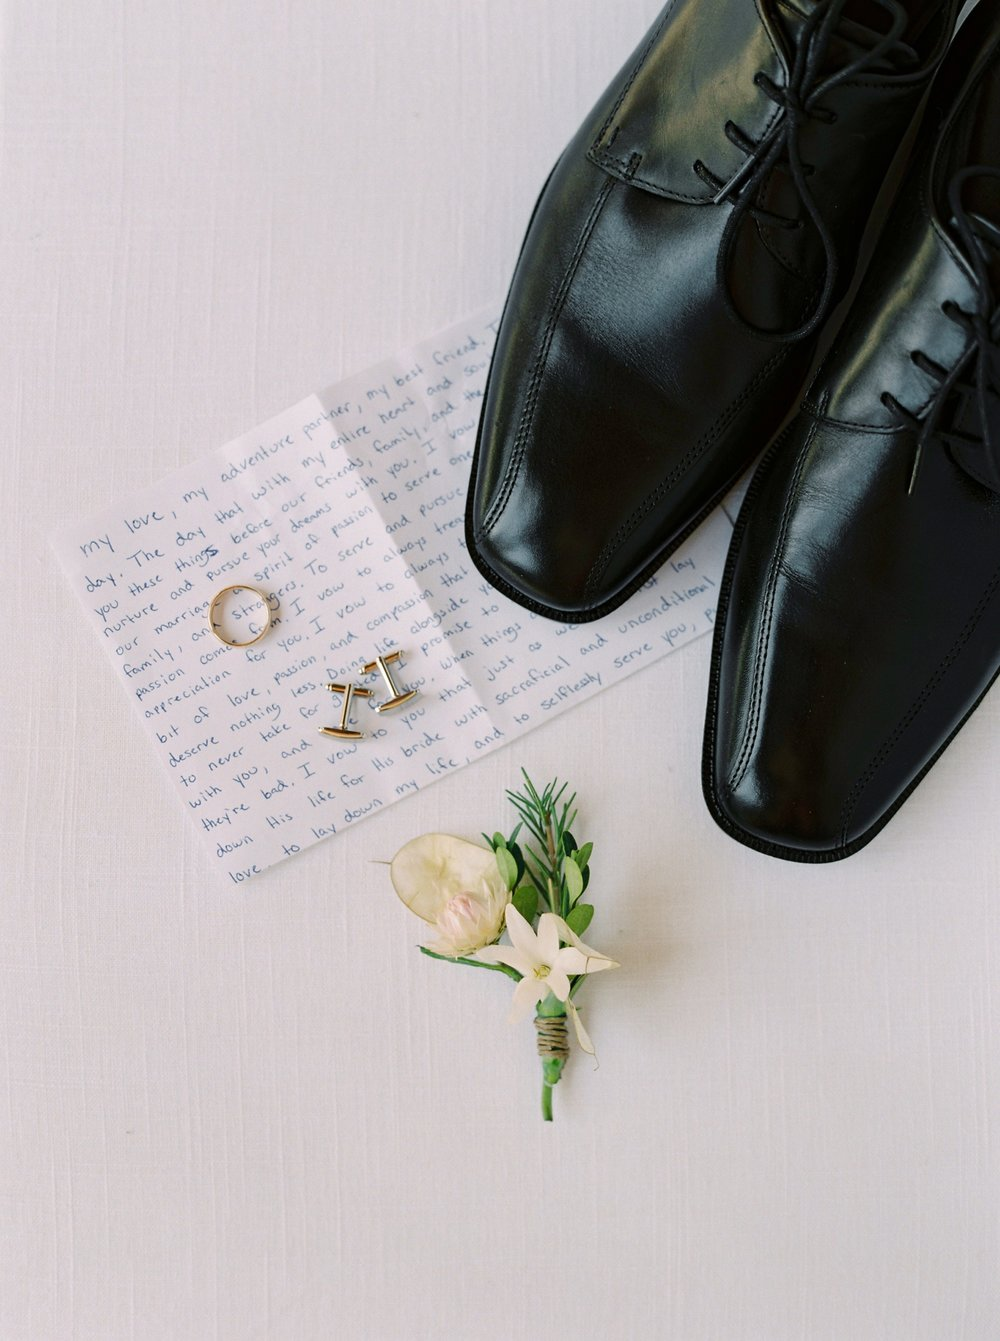 Calgary wedding photographers | georgia wedding photographers | fine art film | Justine Milton Photography | wedding details | georgia wedding | groom shoes | wedding rings